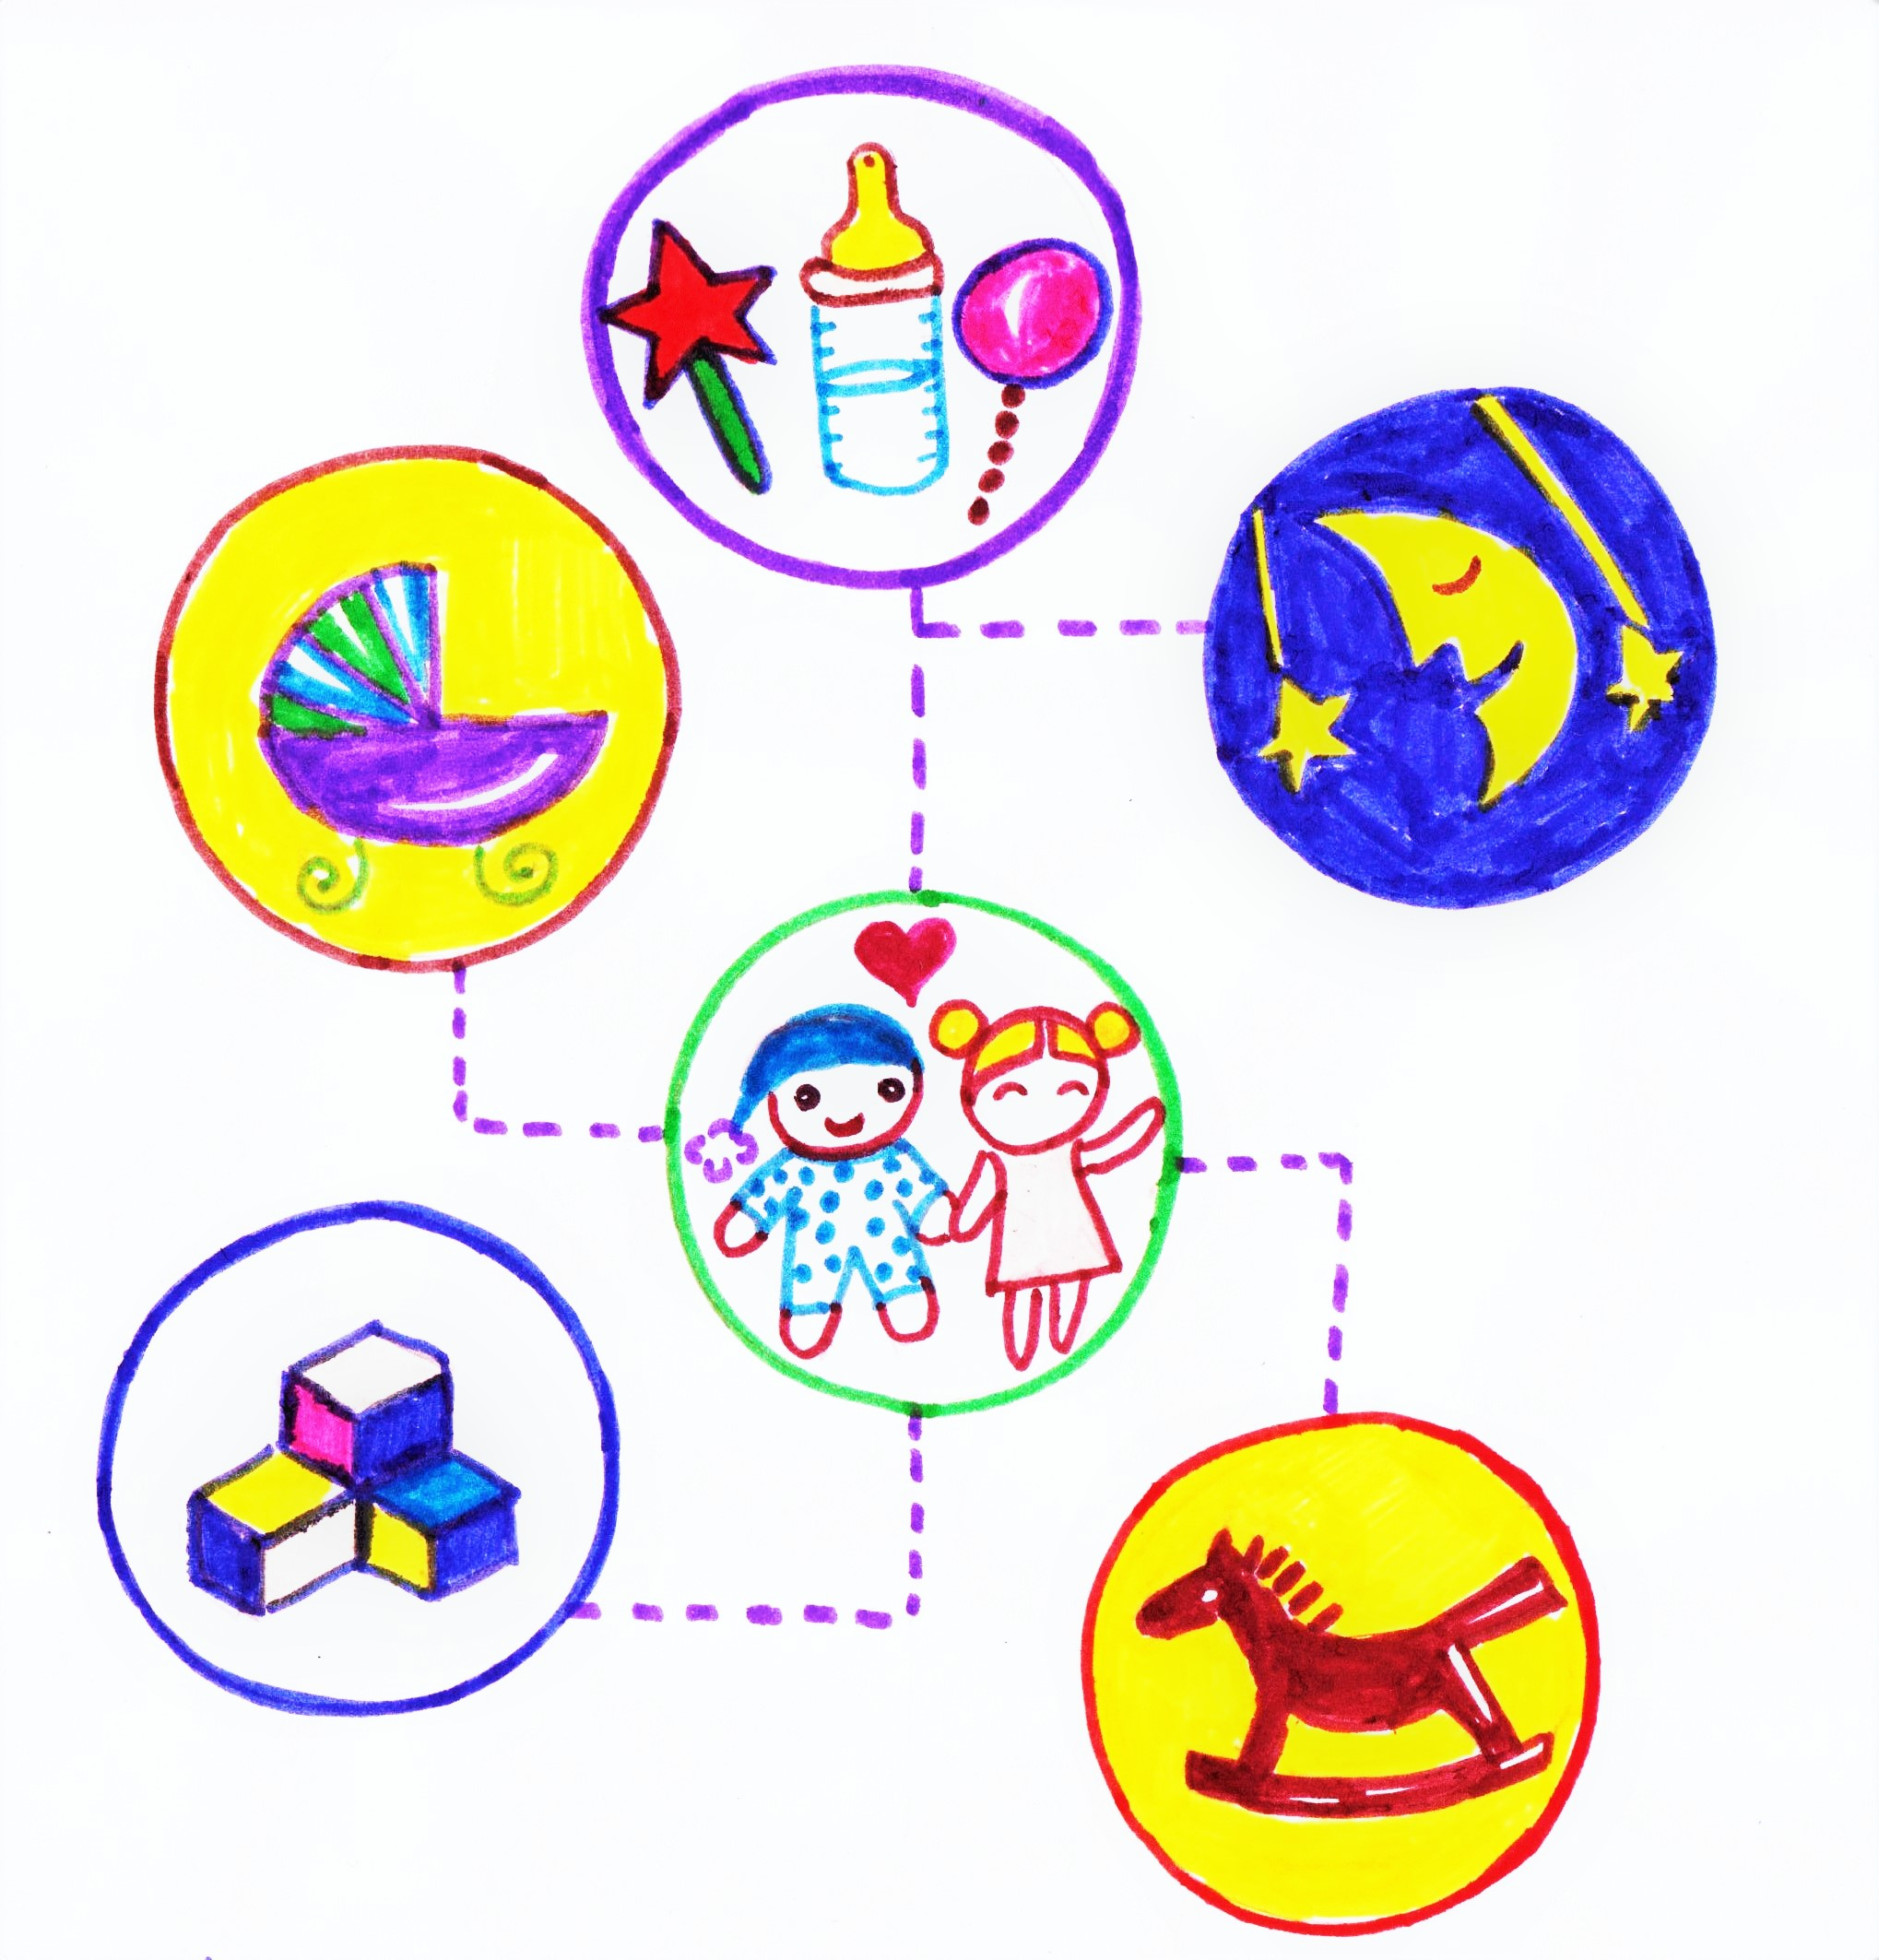 28-Family page - Child care system